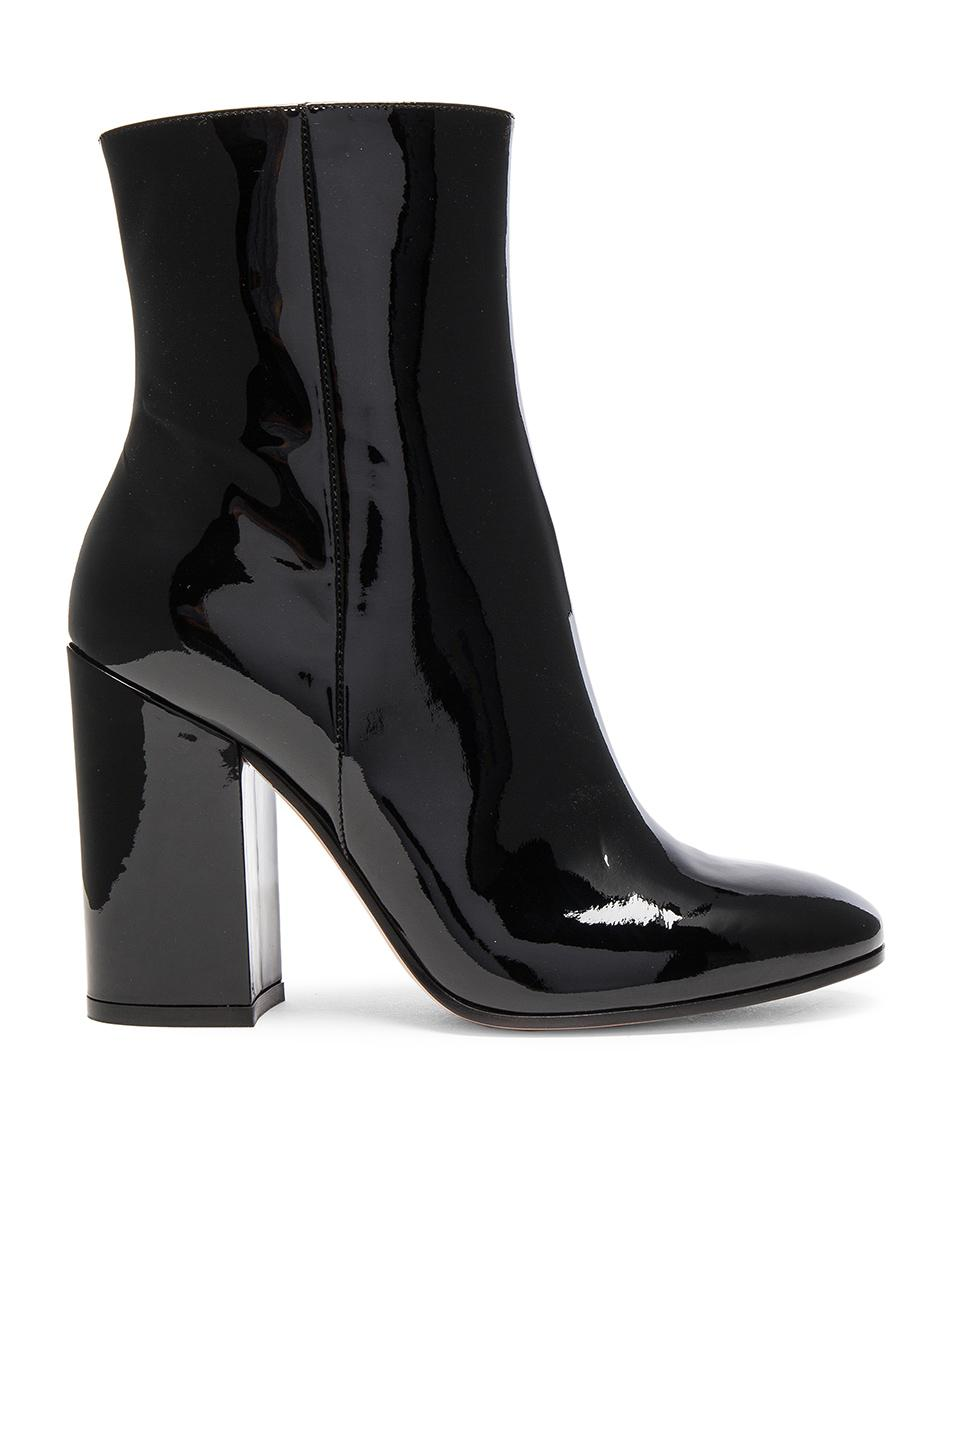 High heeled boot Side zipper closure Pointy toe design Slouchy patent leather upper Neoprene lining Padded leather insole Leather sole 3 inch block heel Made in Italy.